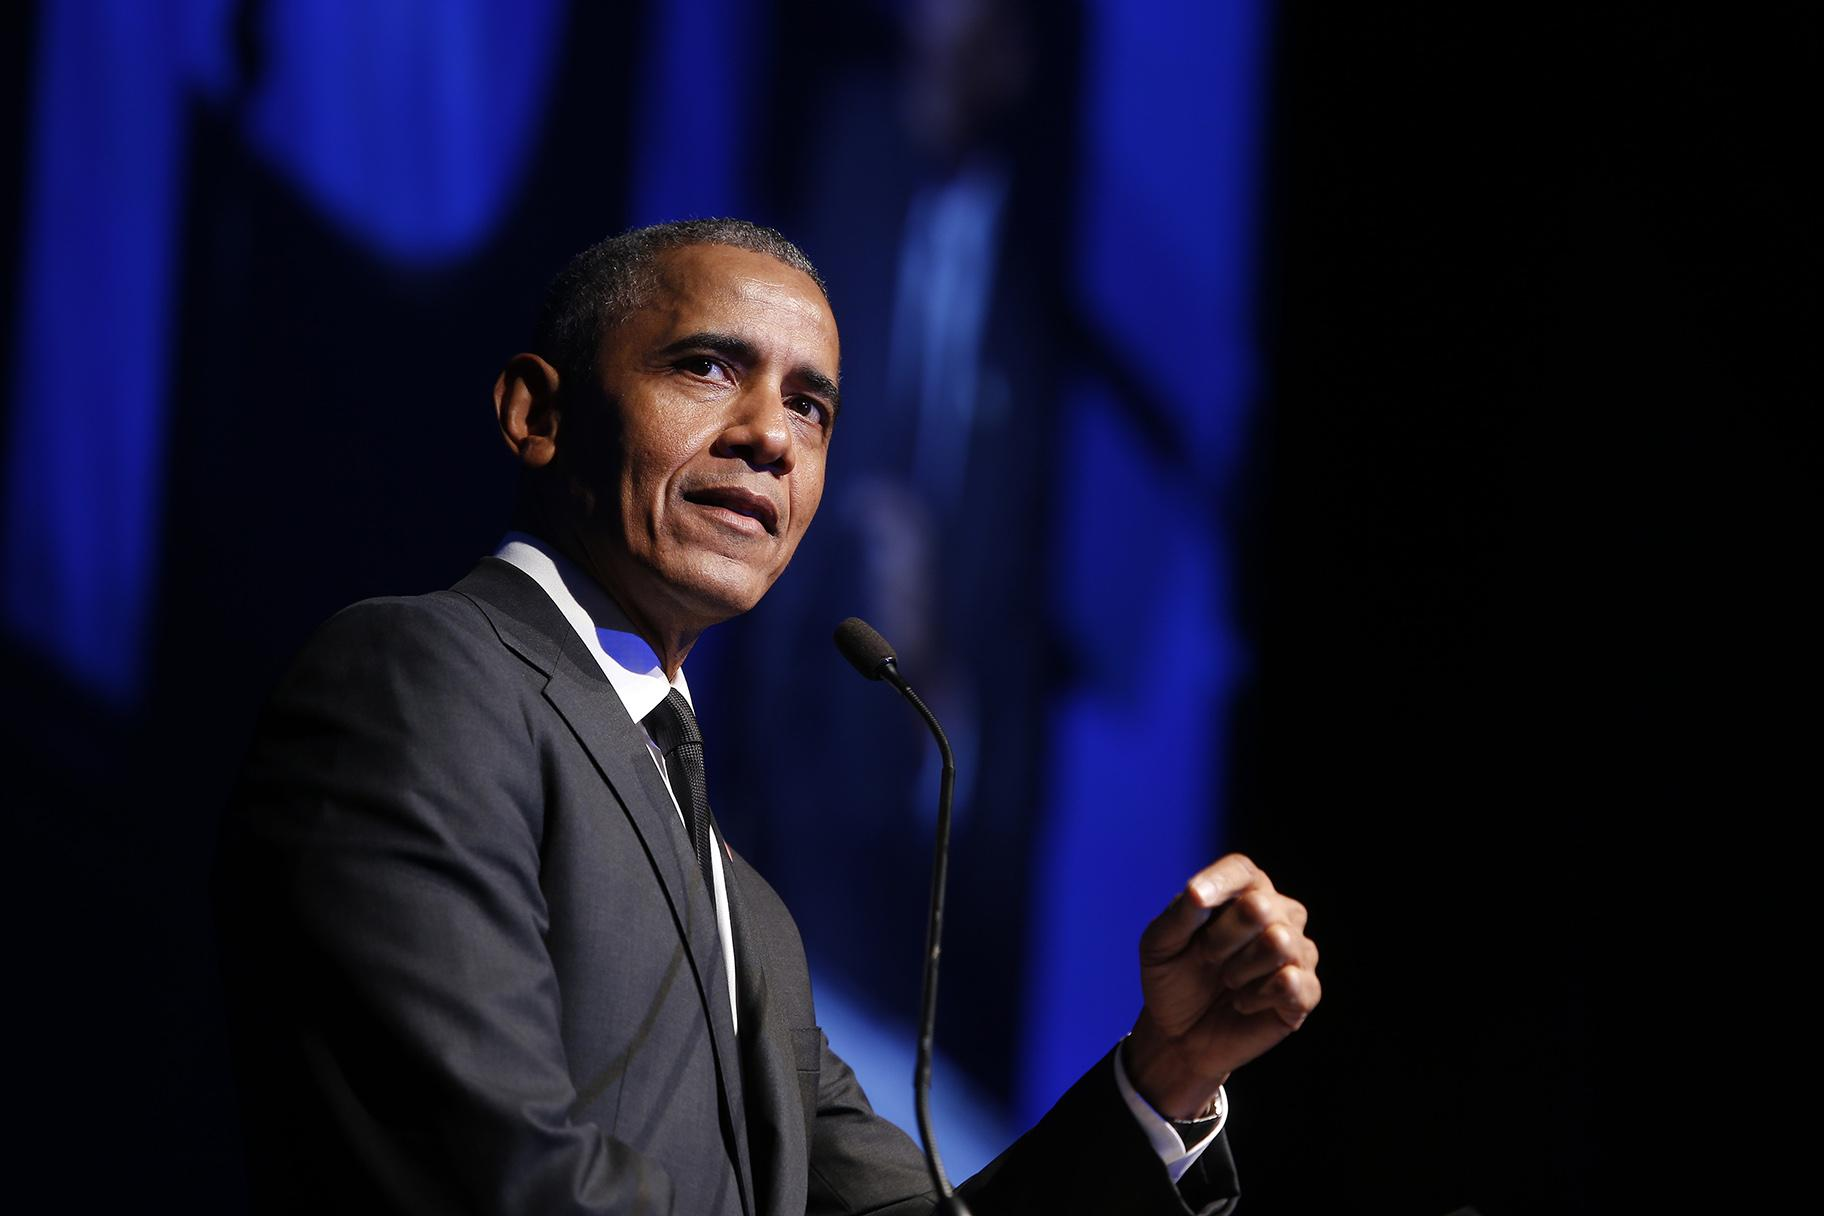 In this Dec. 12, 2018, file photo former President Barack Obama accepts the Robert F. Kennedy Human Rights Ripple of Hope Award at a ceremony in New York. (AP Photo / Jason DeCrow, File)